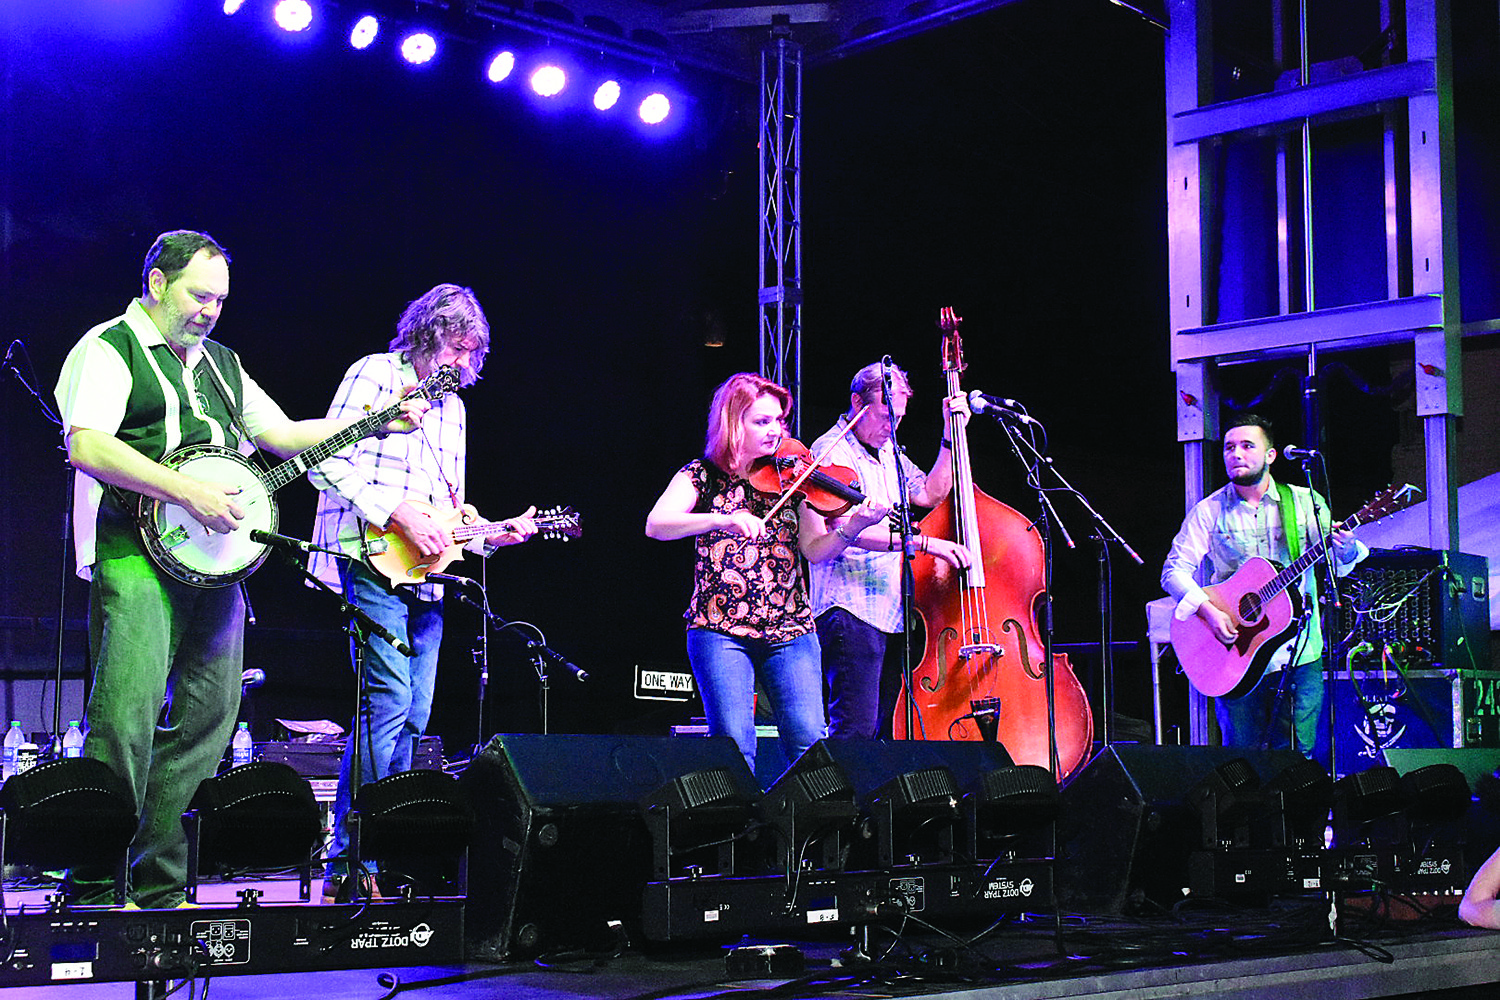 The 2018 Coca-Cola Foothills Festival opened Friday night with performances by River Dan, Will Hoge and The SteelDrivers.